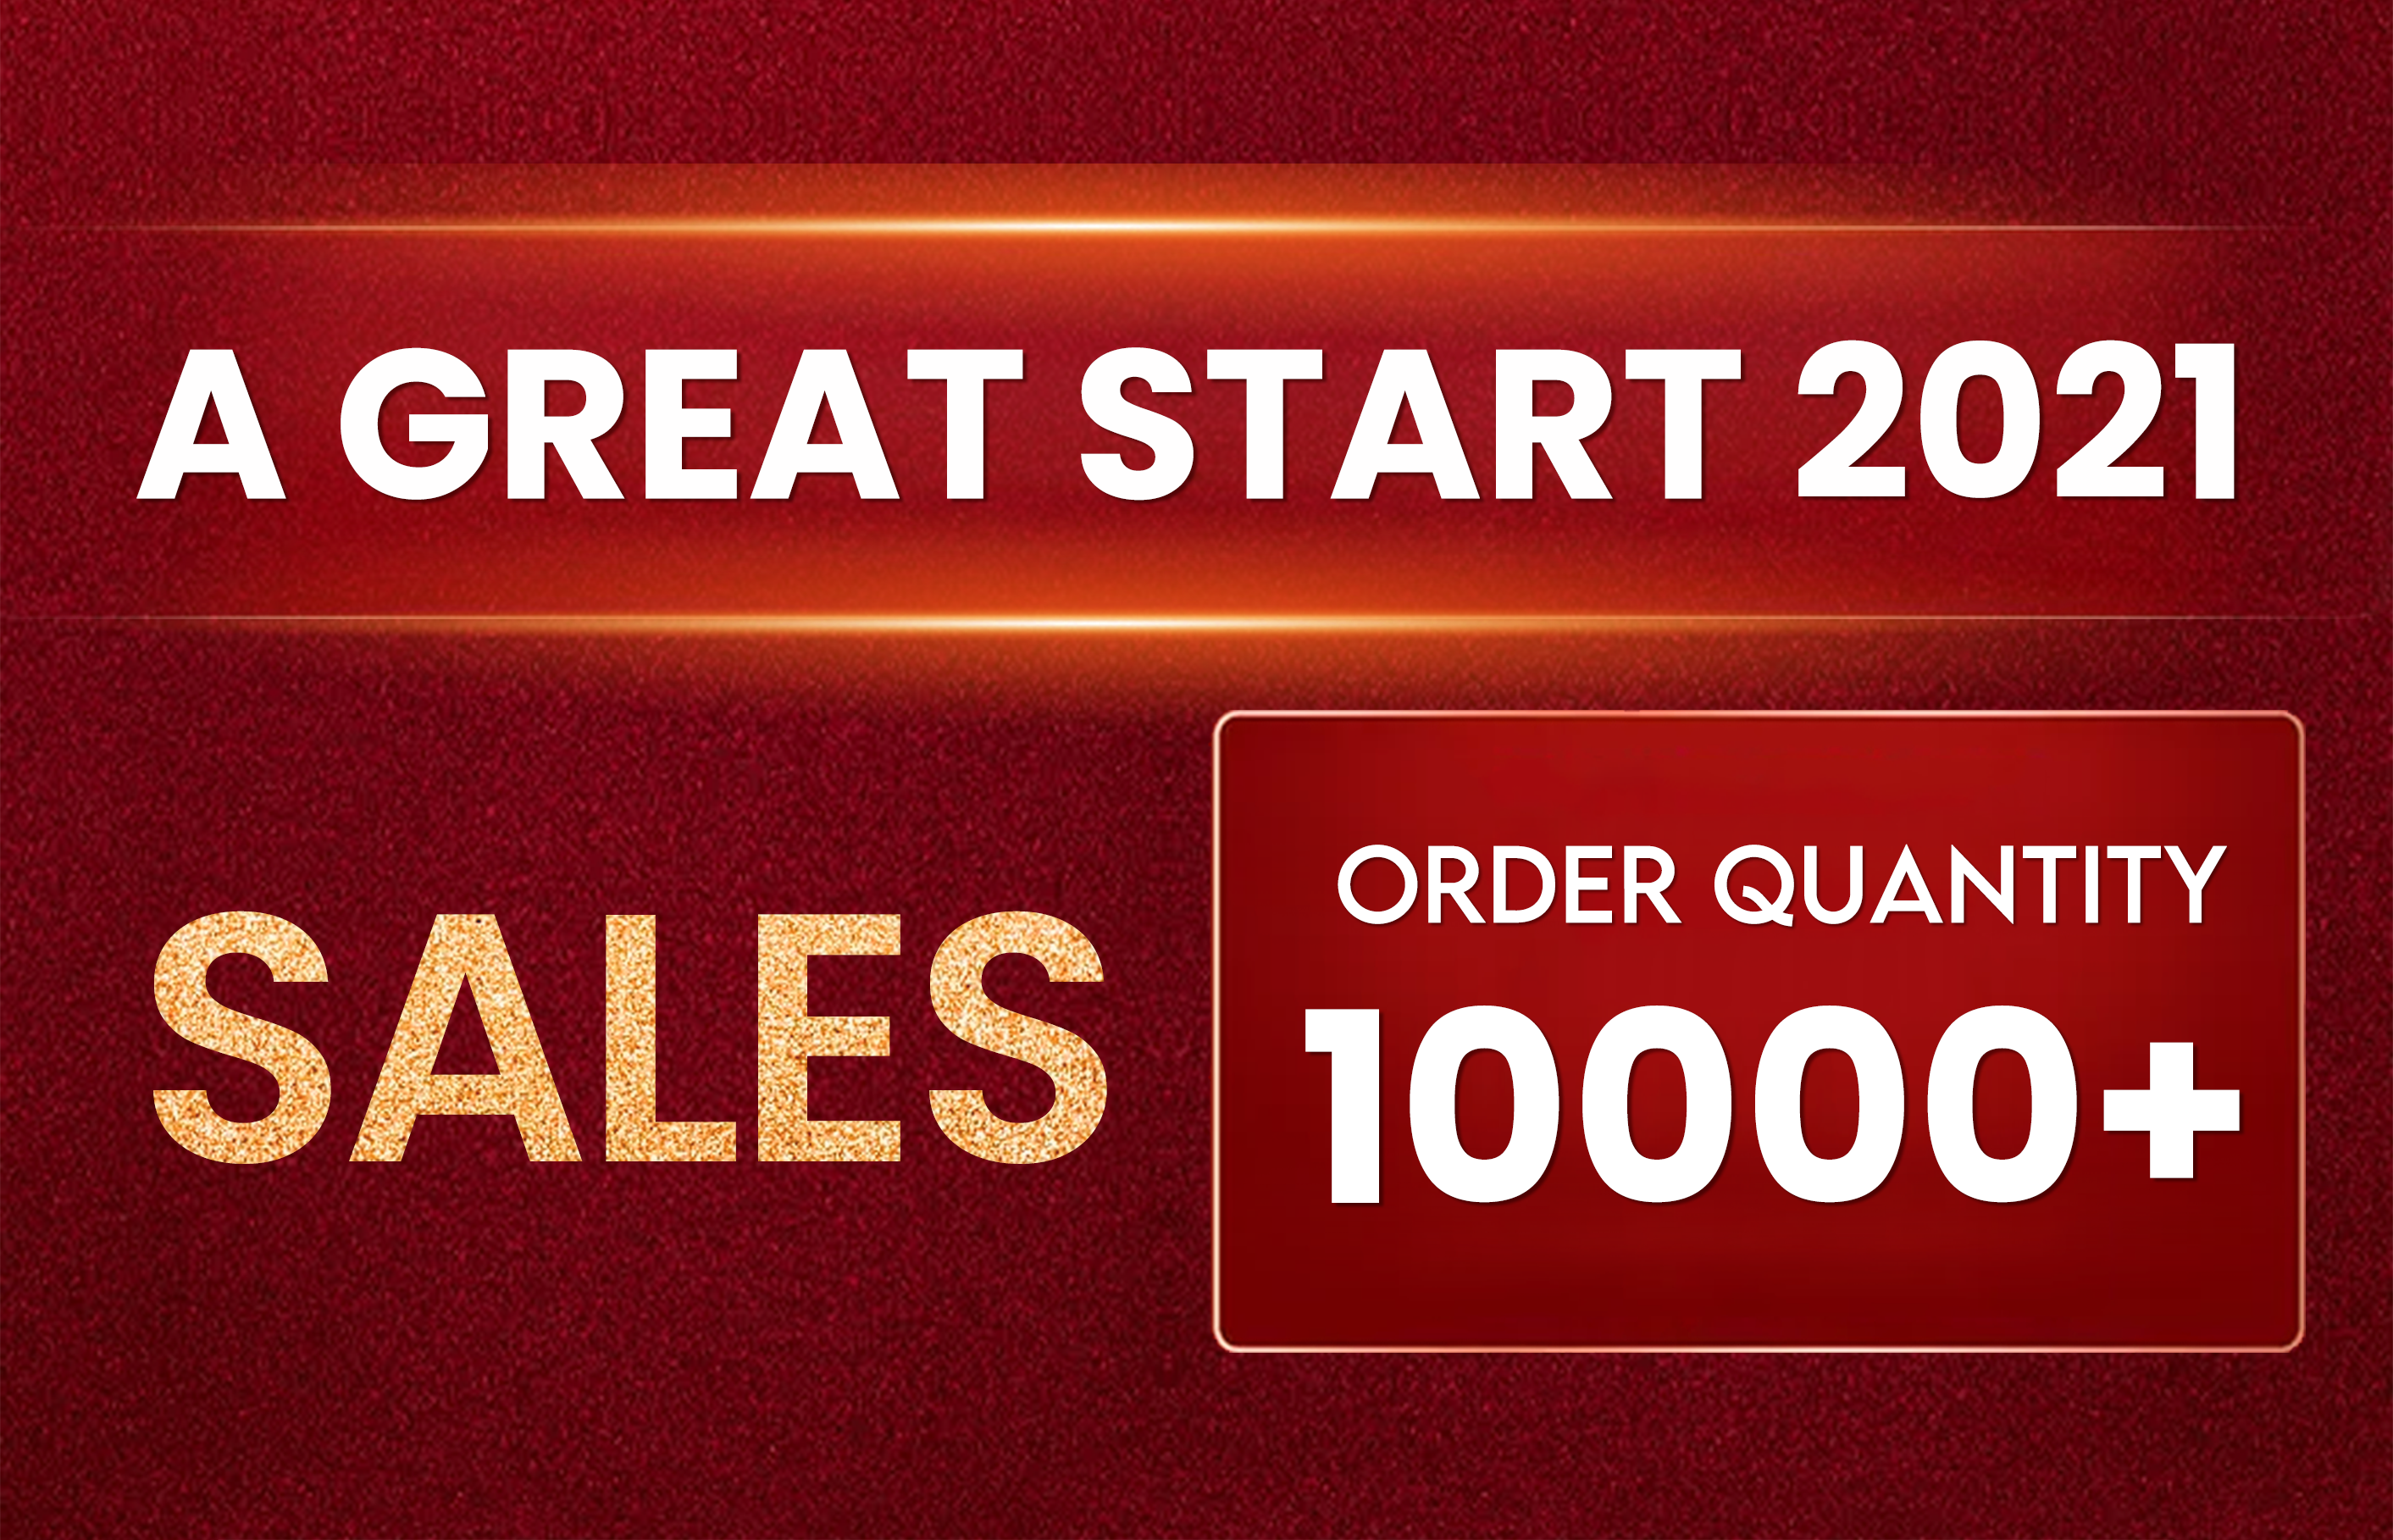 A Great Start to 2021 with Sales of over 10,000 in February